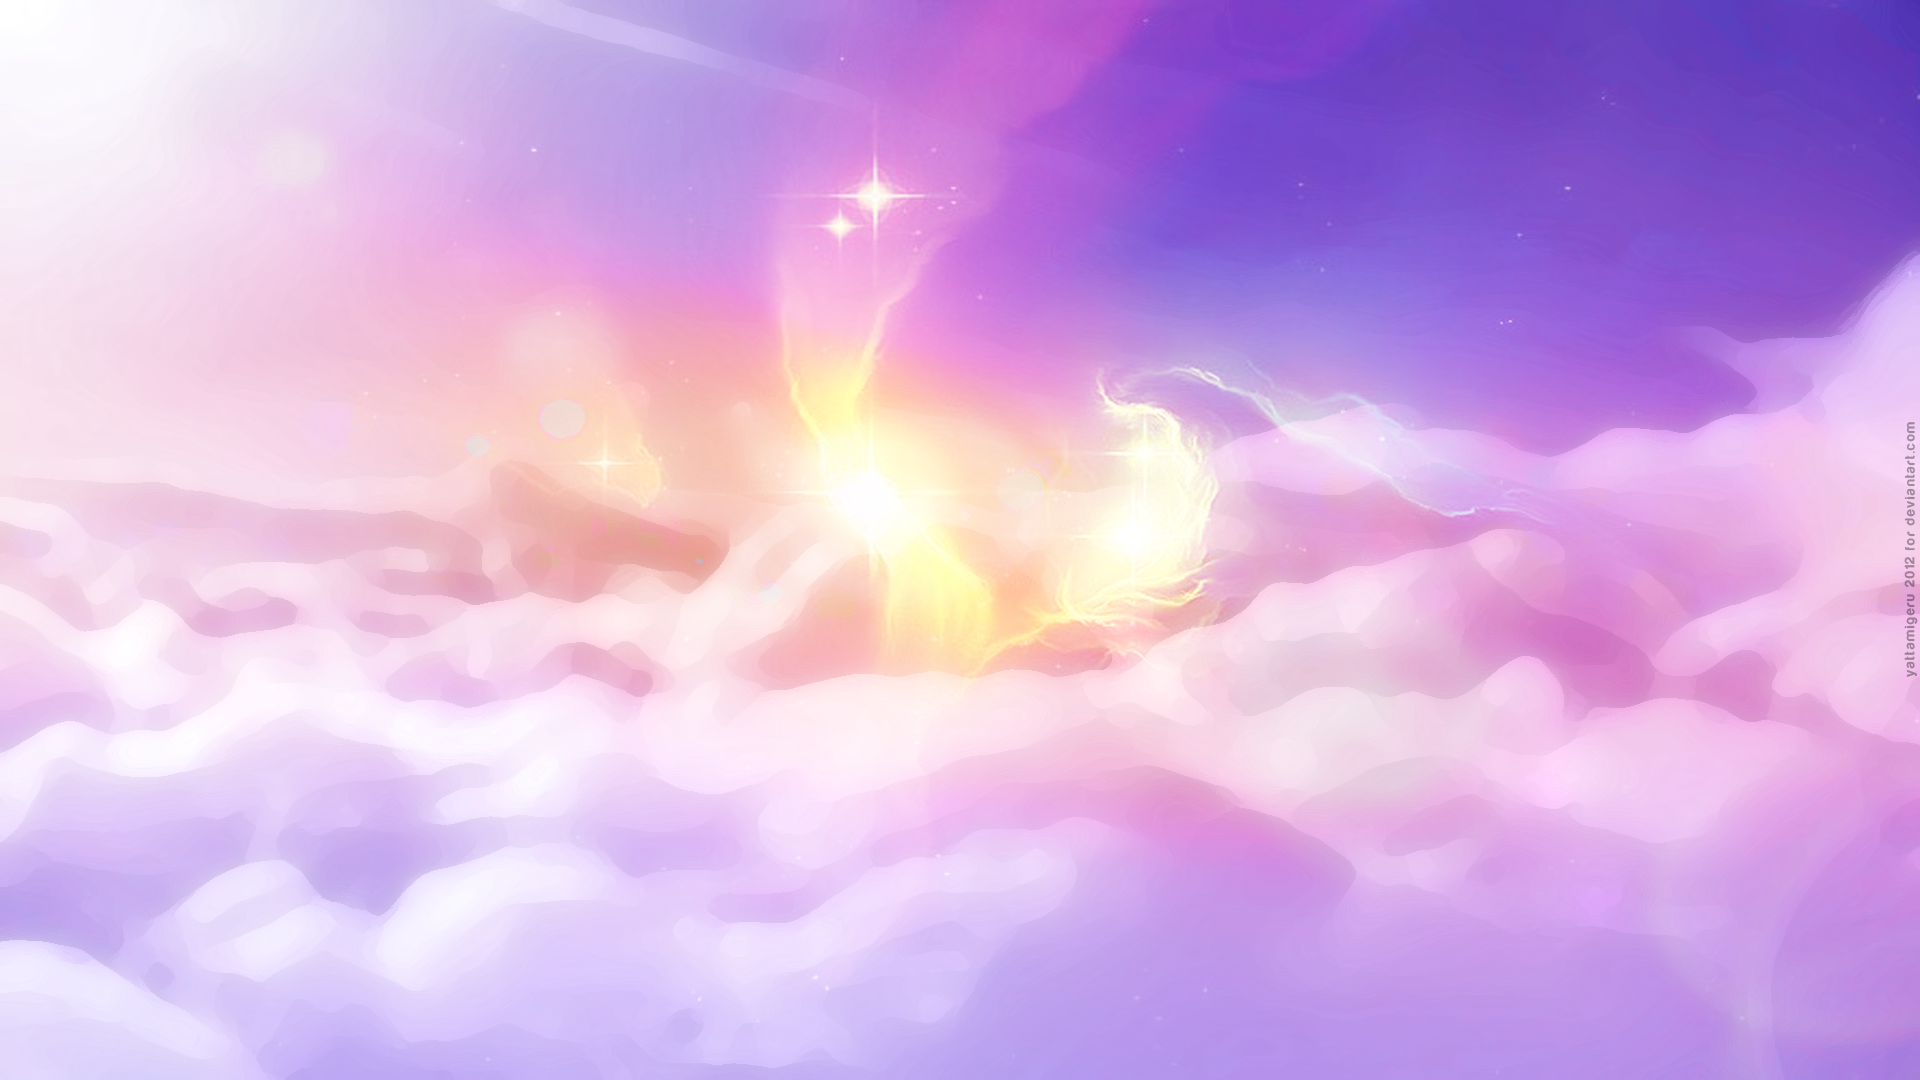 Clouds Shine Sunrise Wallpaper 1920x1080 HD By Yattamigeru